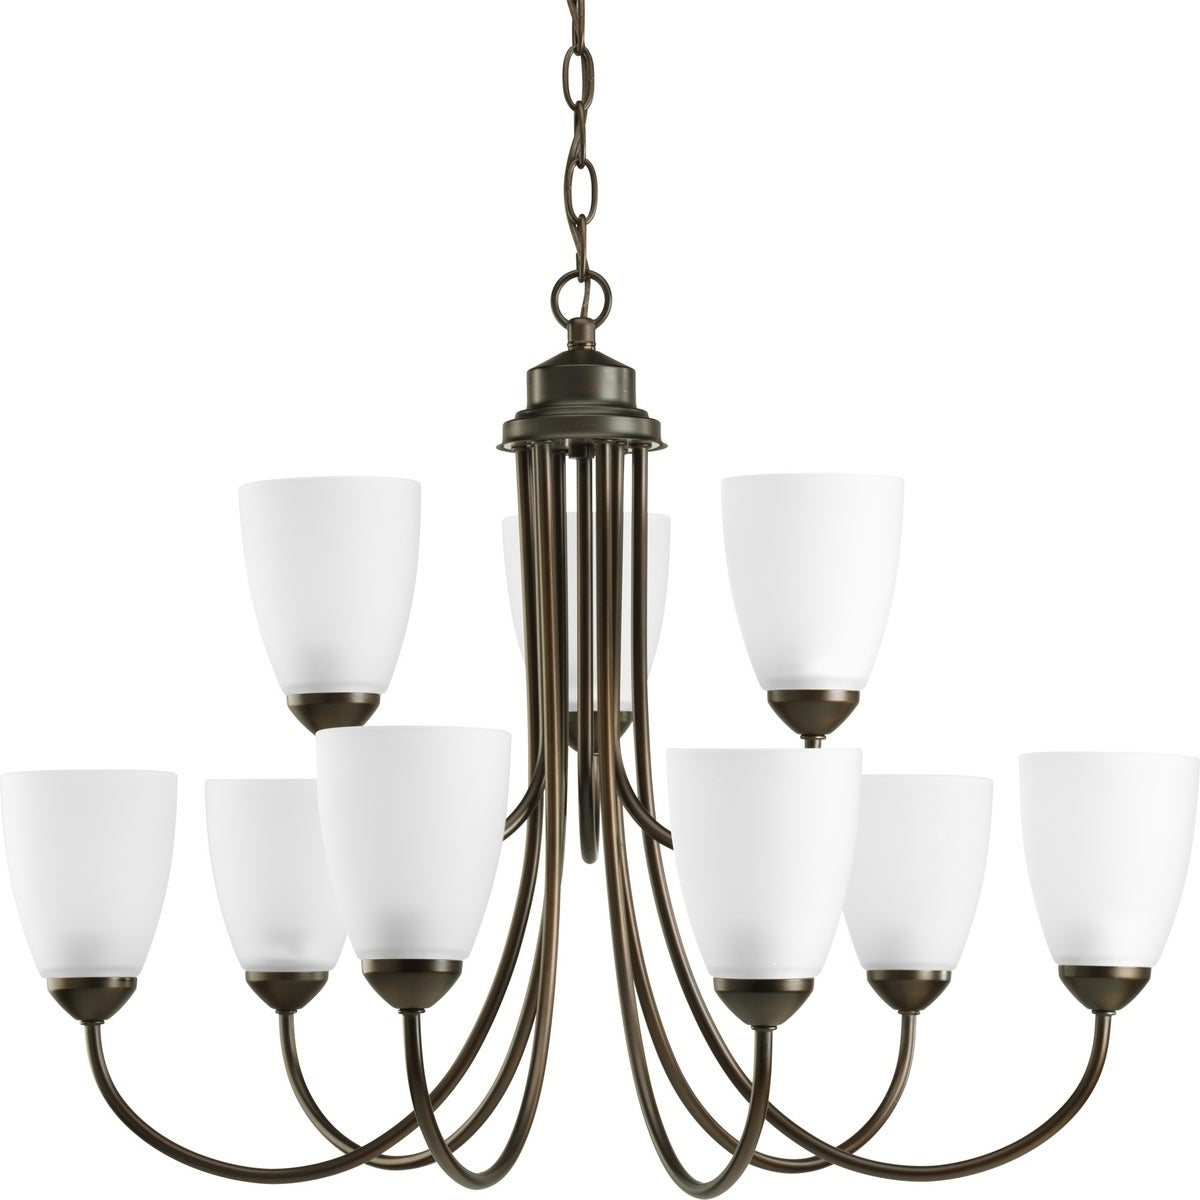 Progress Lighting Gather Collection Energy Star Certified 9 Light 2 Tier Antique Bronze Chandelier Fixture N A